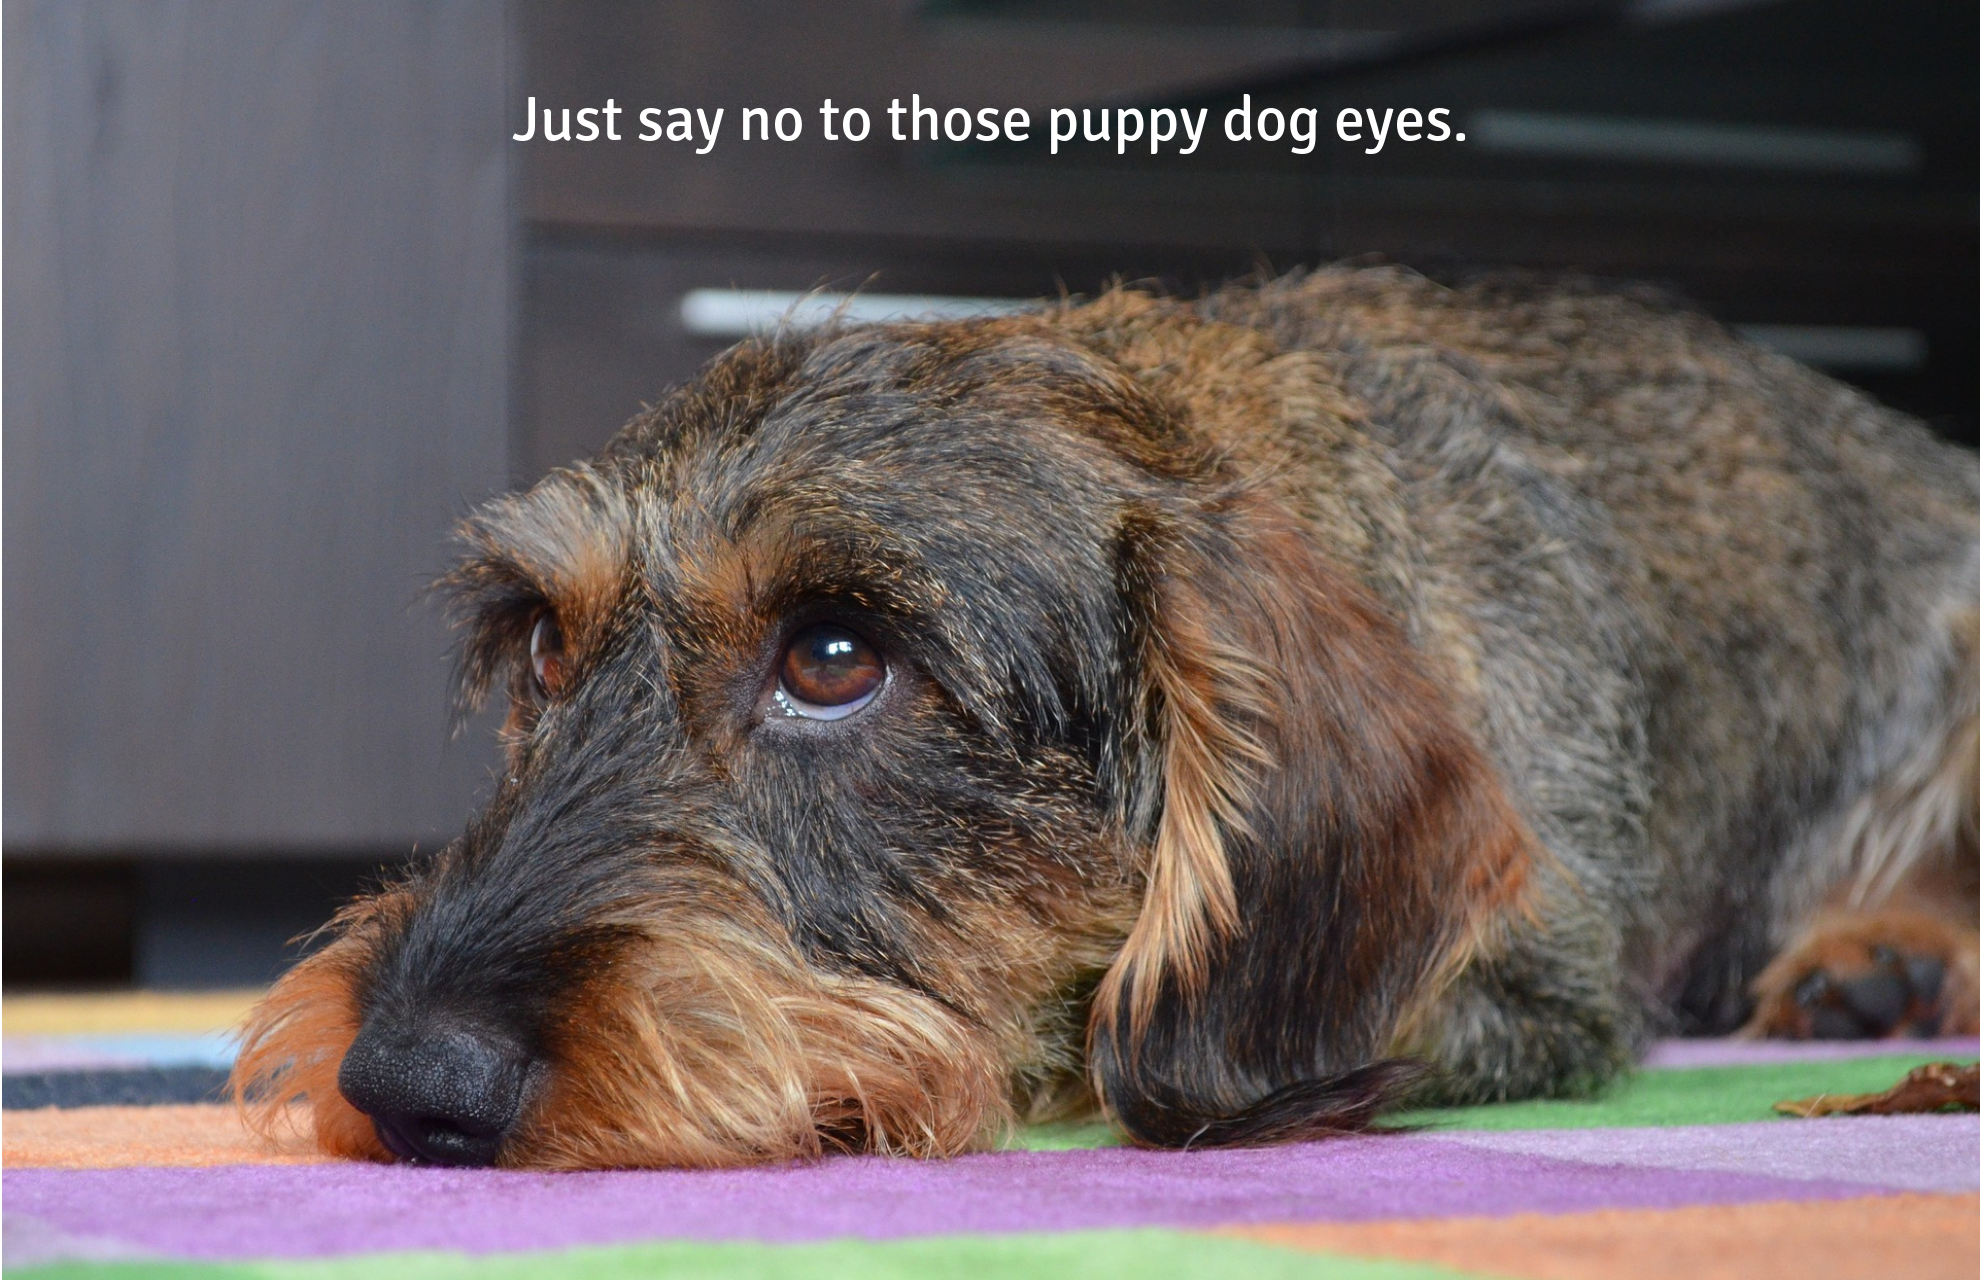 Just say no to those puppy dog eyes.